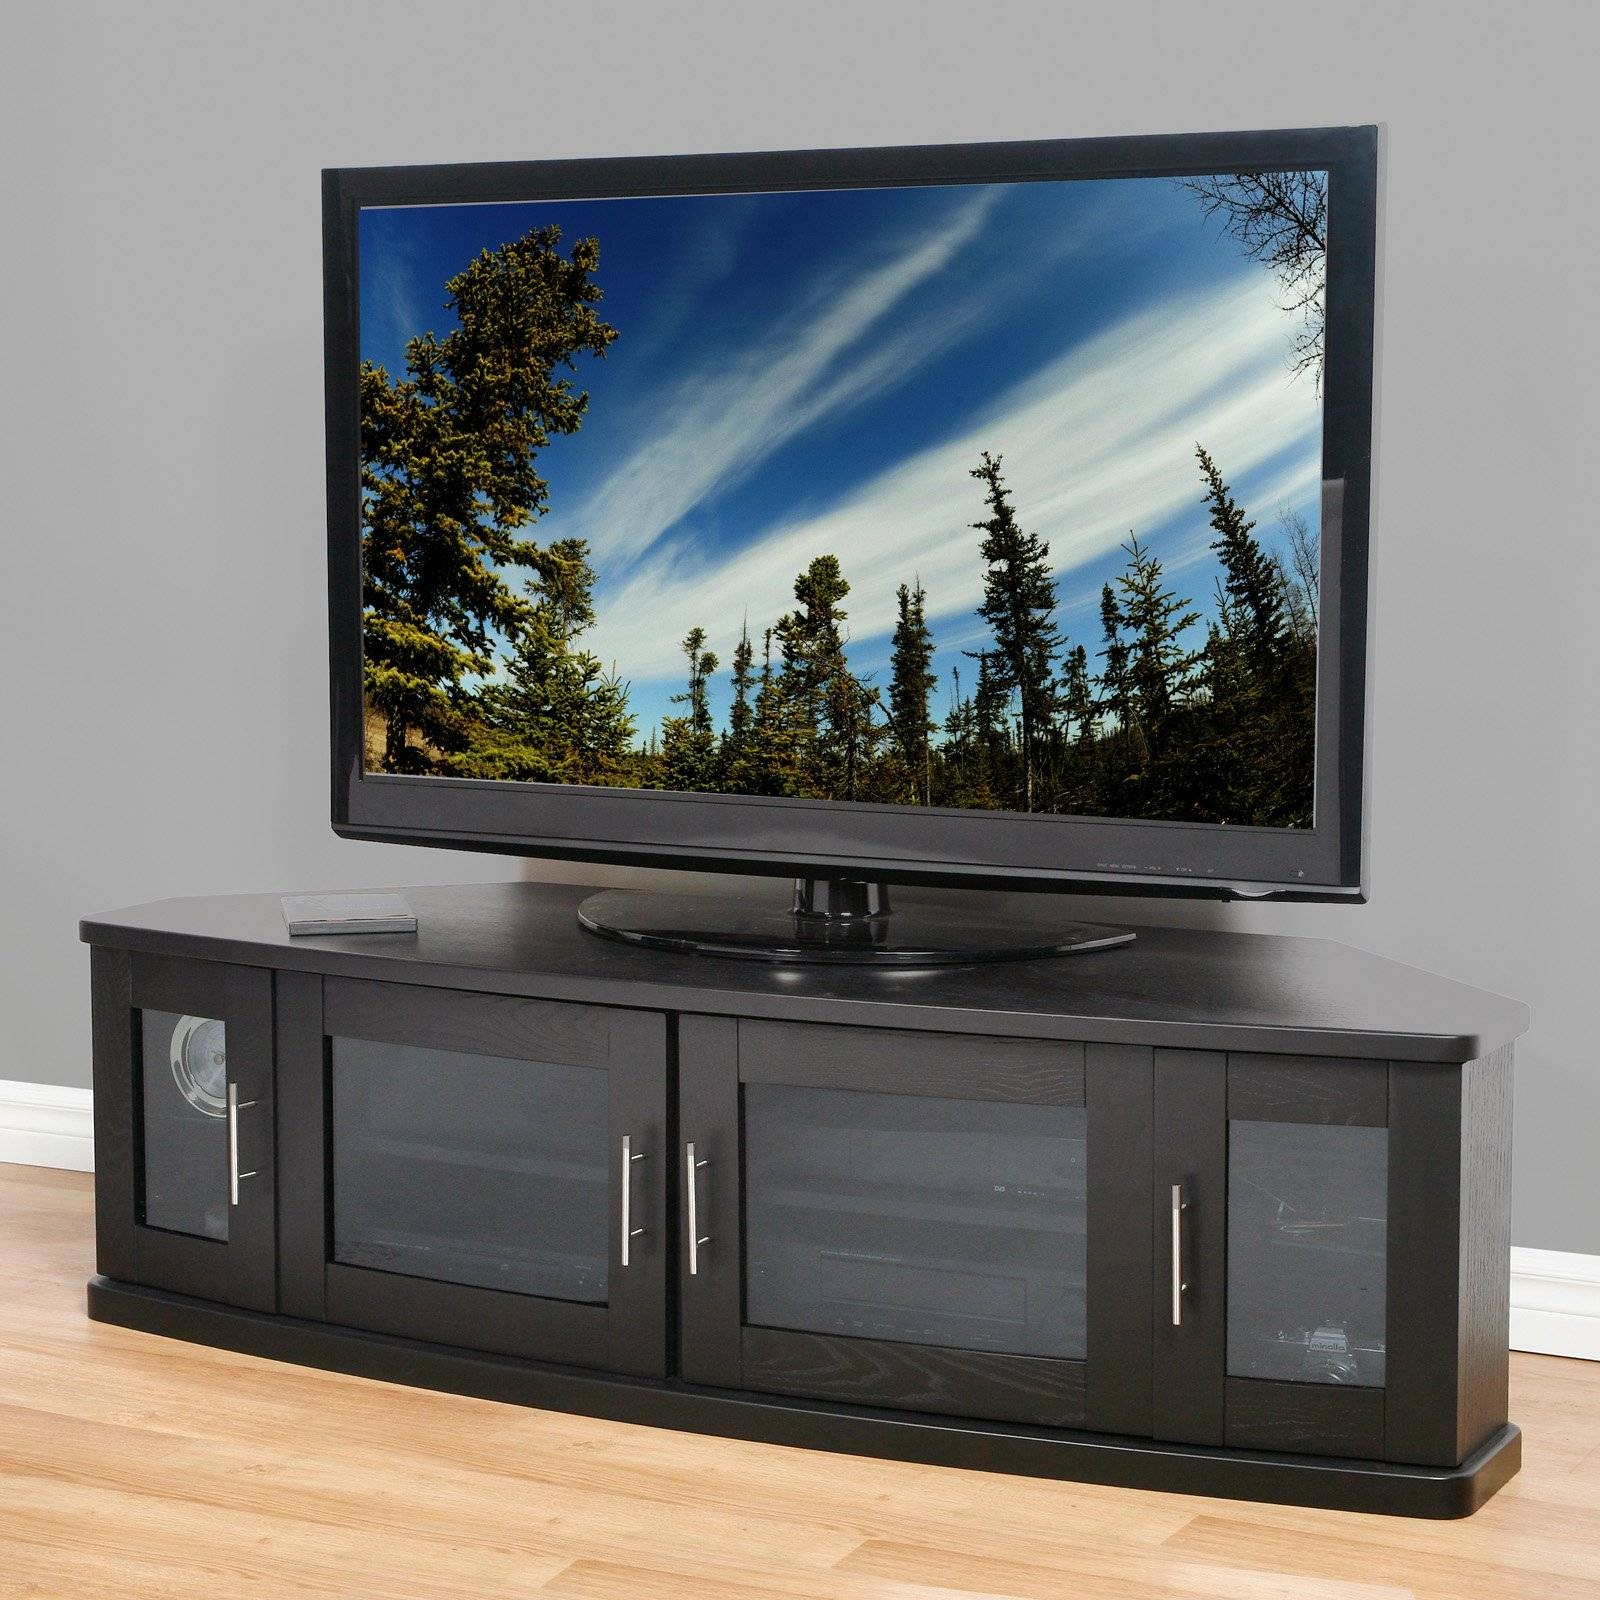 Plateau Newport 62 Inch Corner Tv Stand In Black | Hayneedle for Corner Tv Stands (Image 10 of 15)